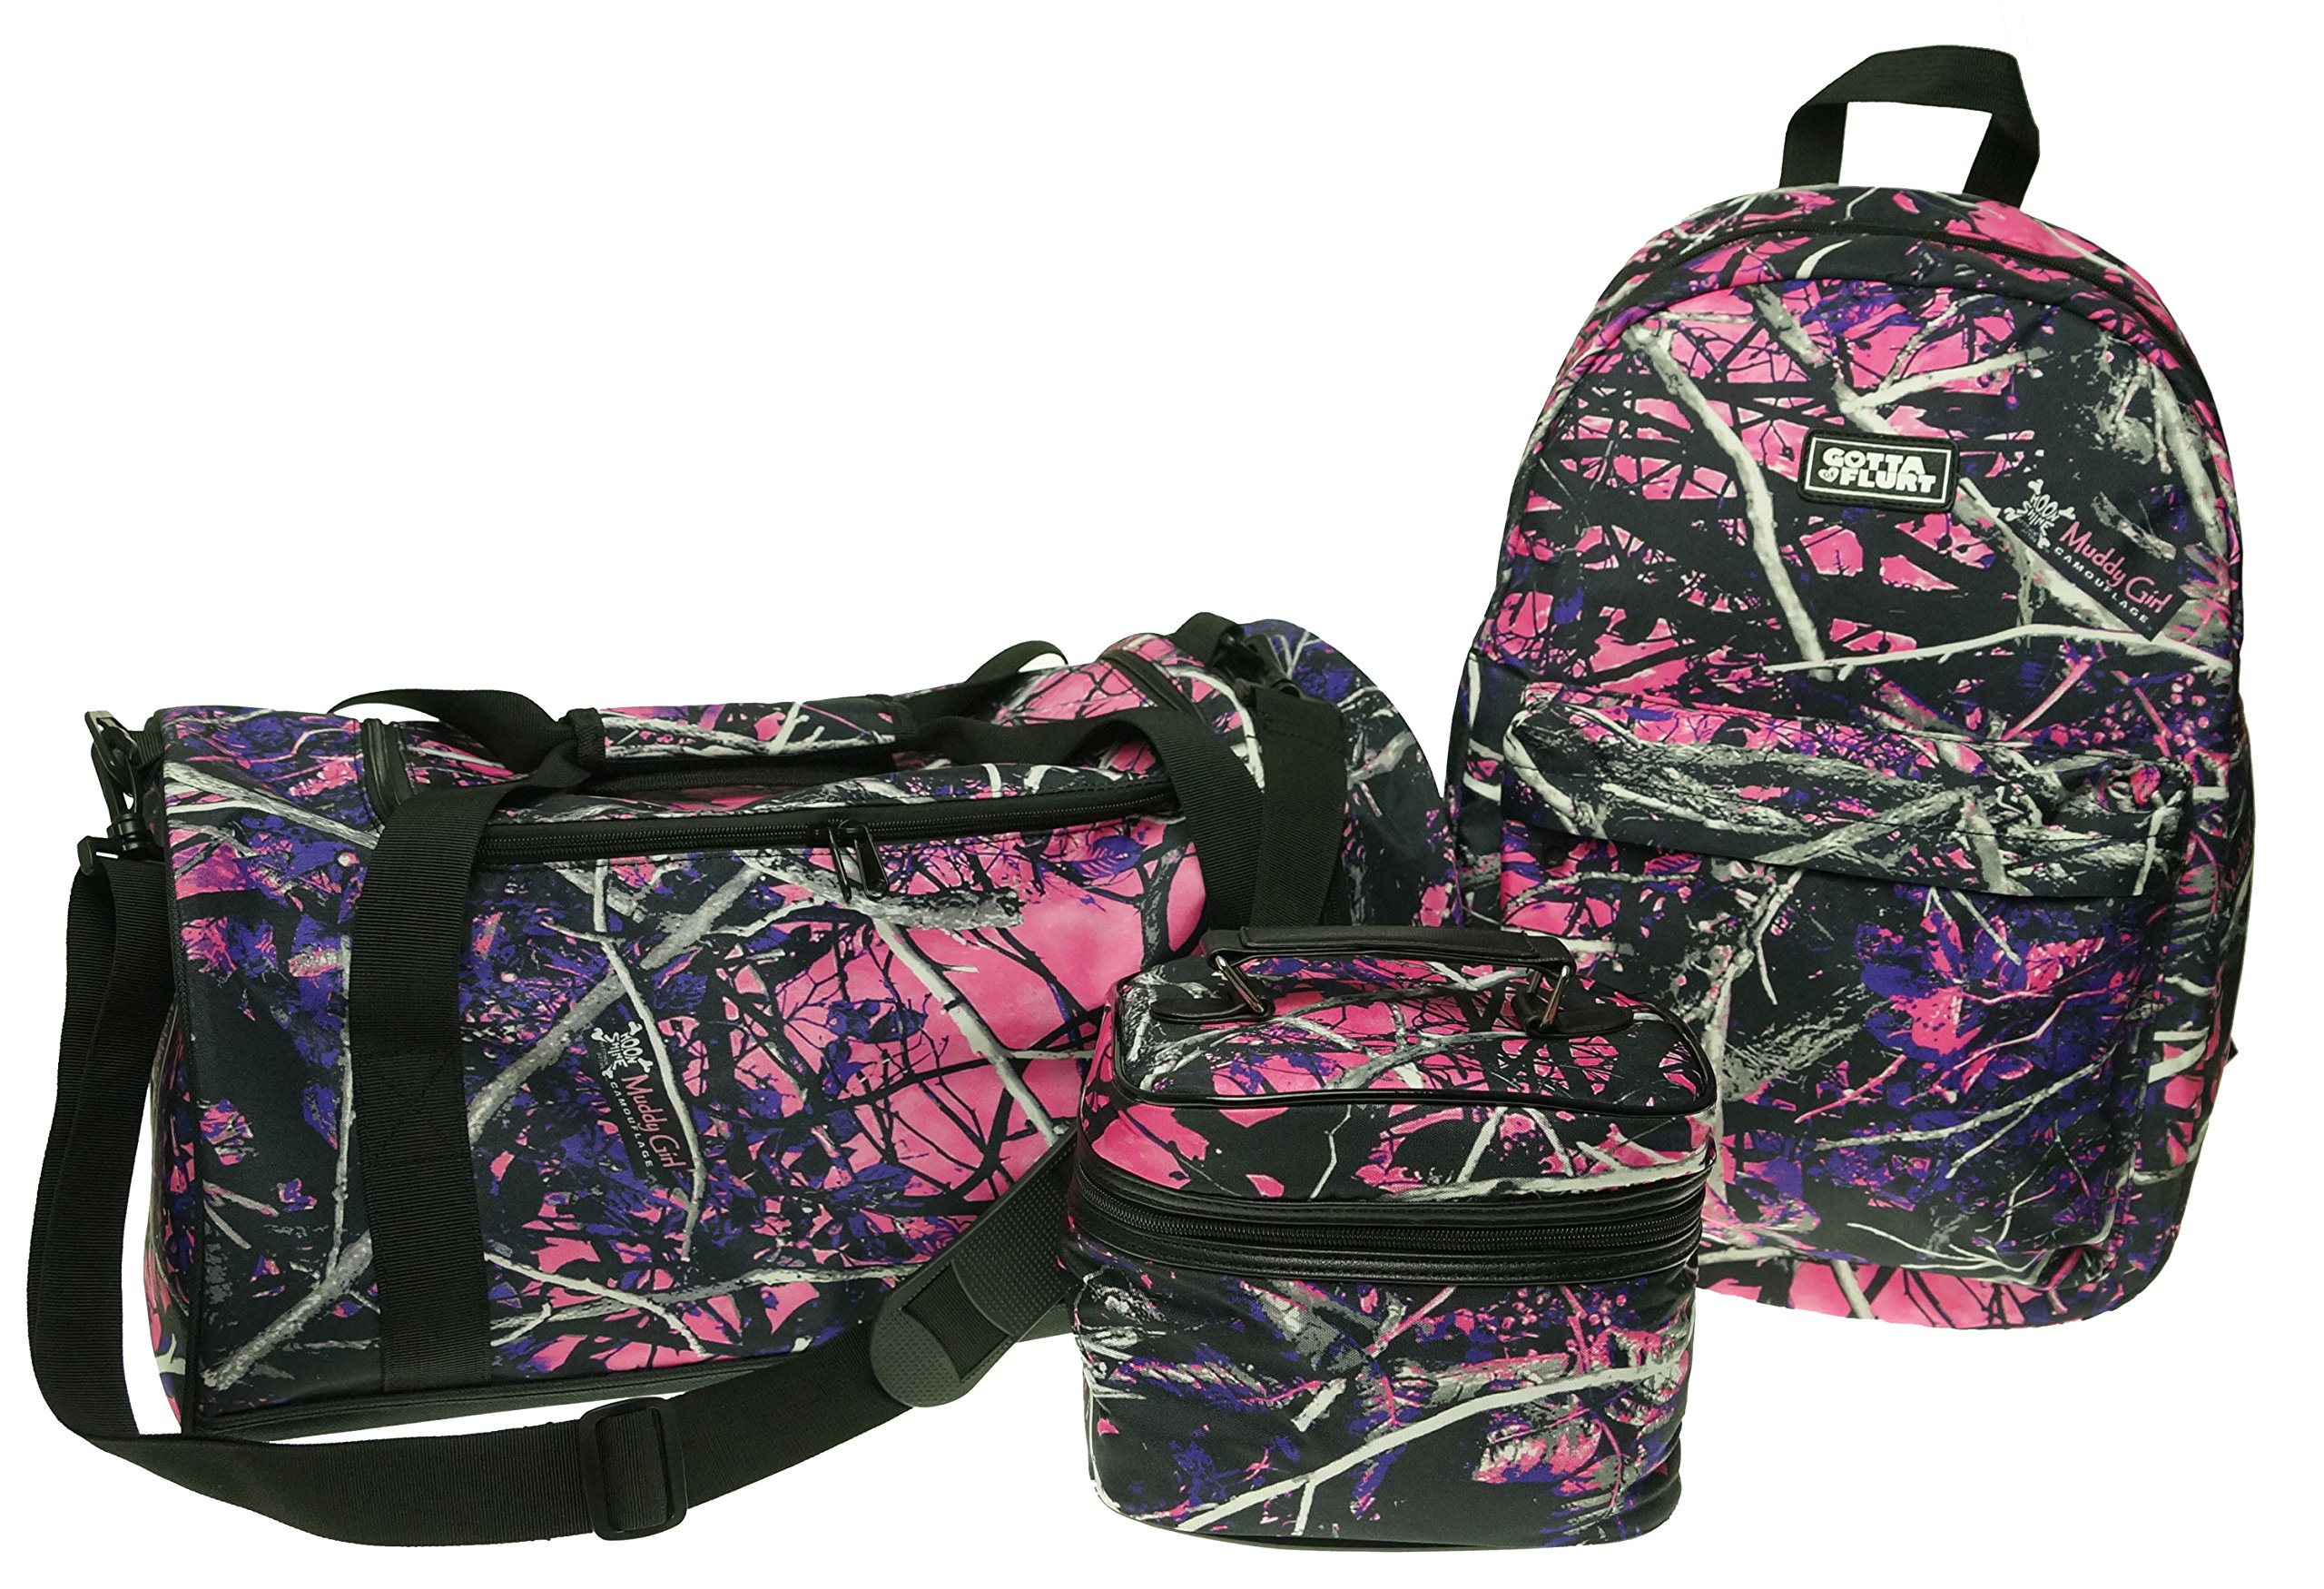 Muddy Girl Pink Backpack Duffel Bag Cosmetic Case 3 Piece Set